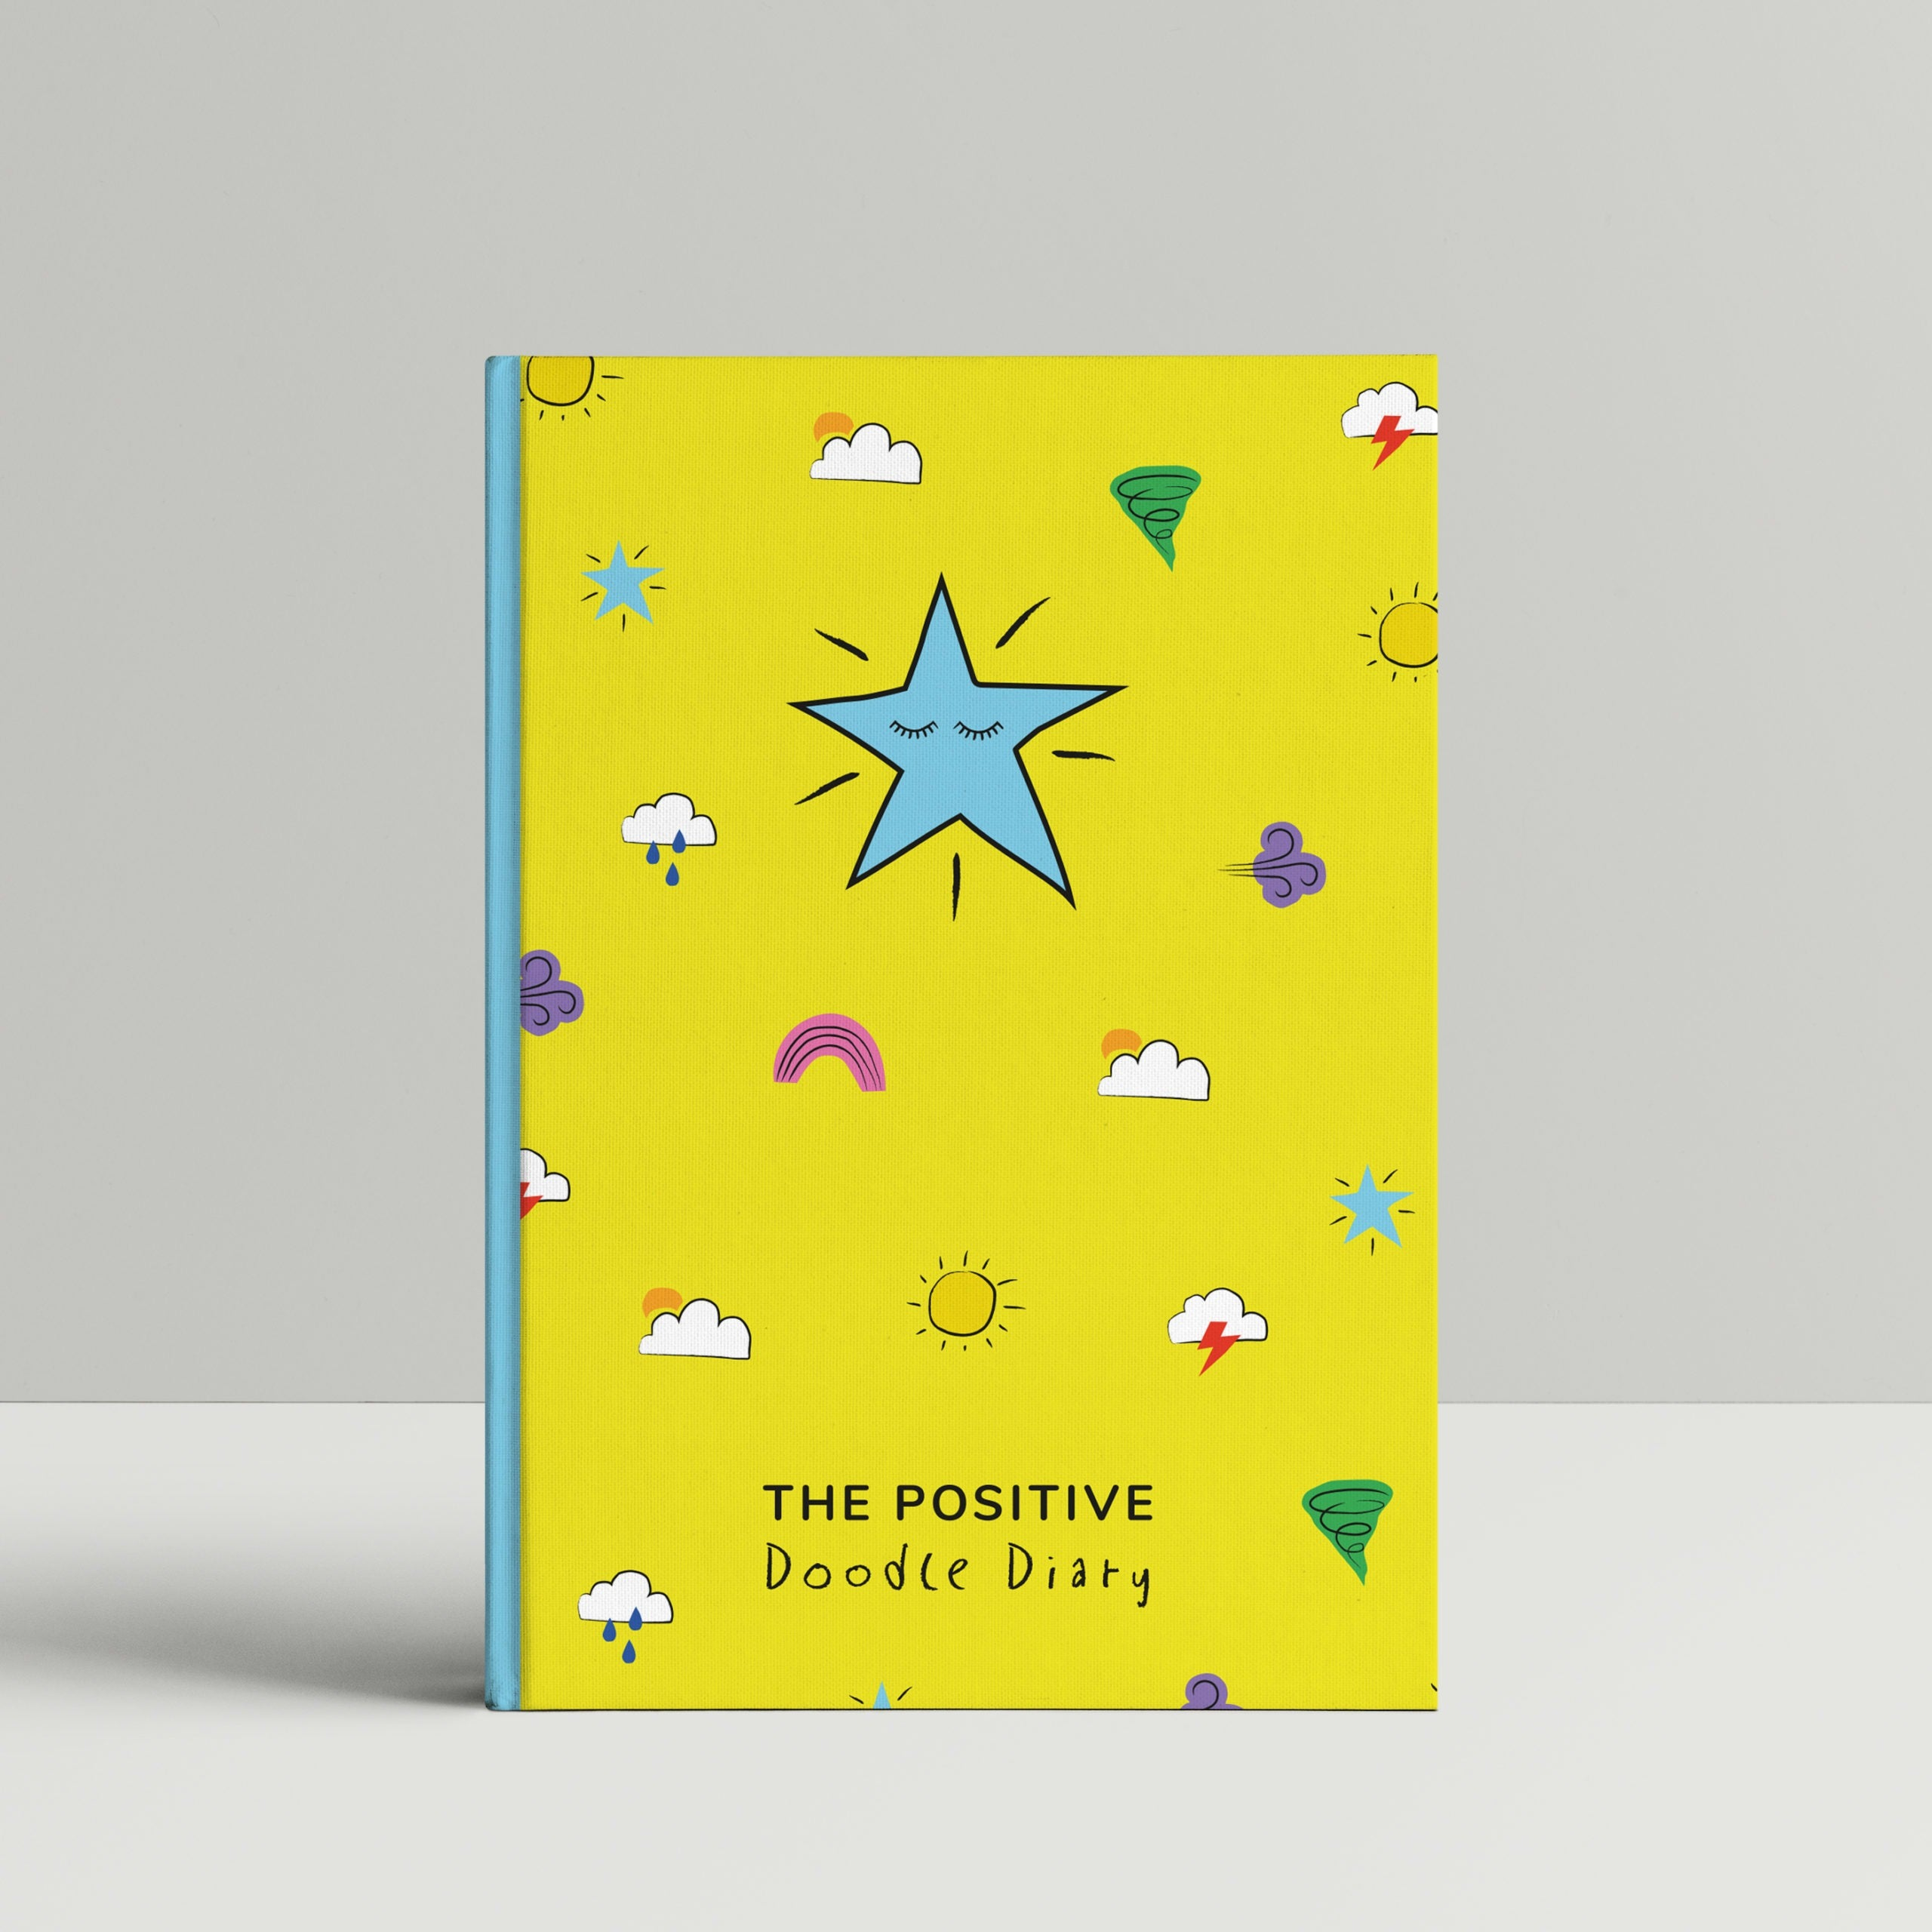 The Positive Doodle Diary for Kids